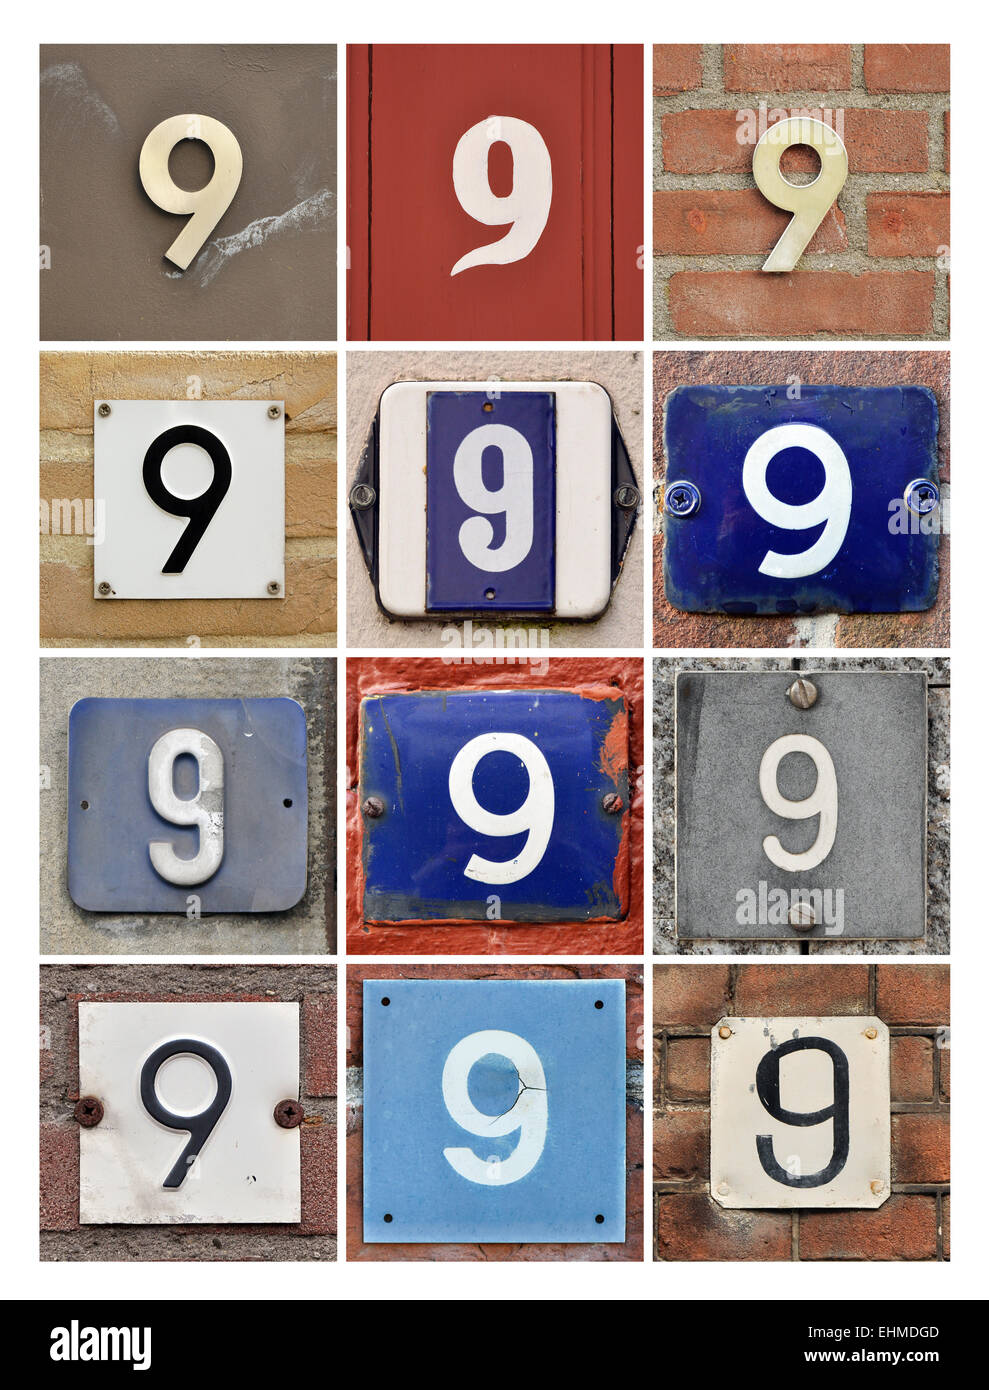 Number 9 - Collage of House Numbers Nine - Stock Image